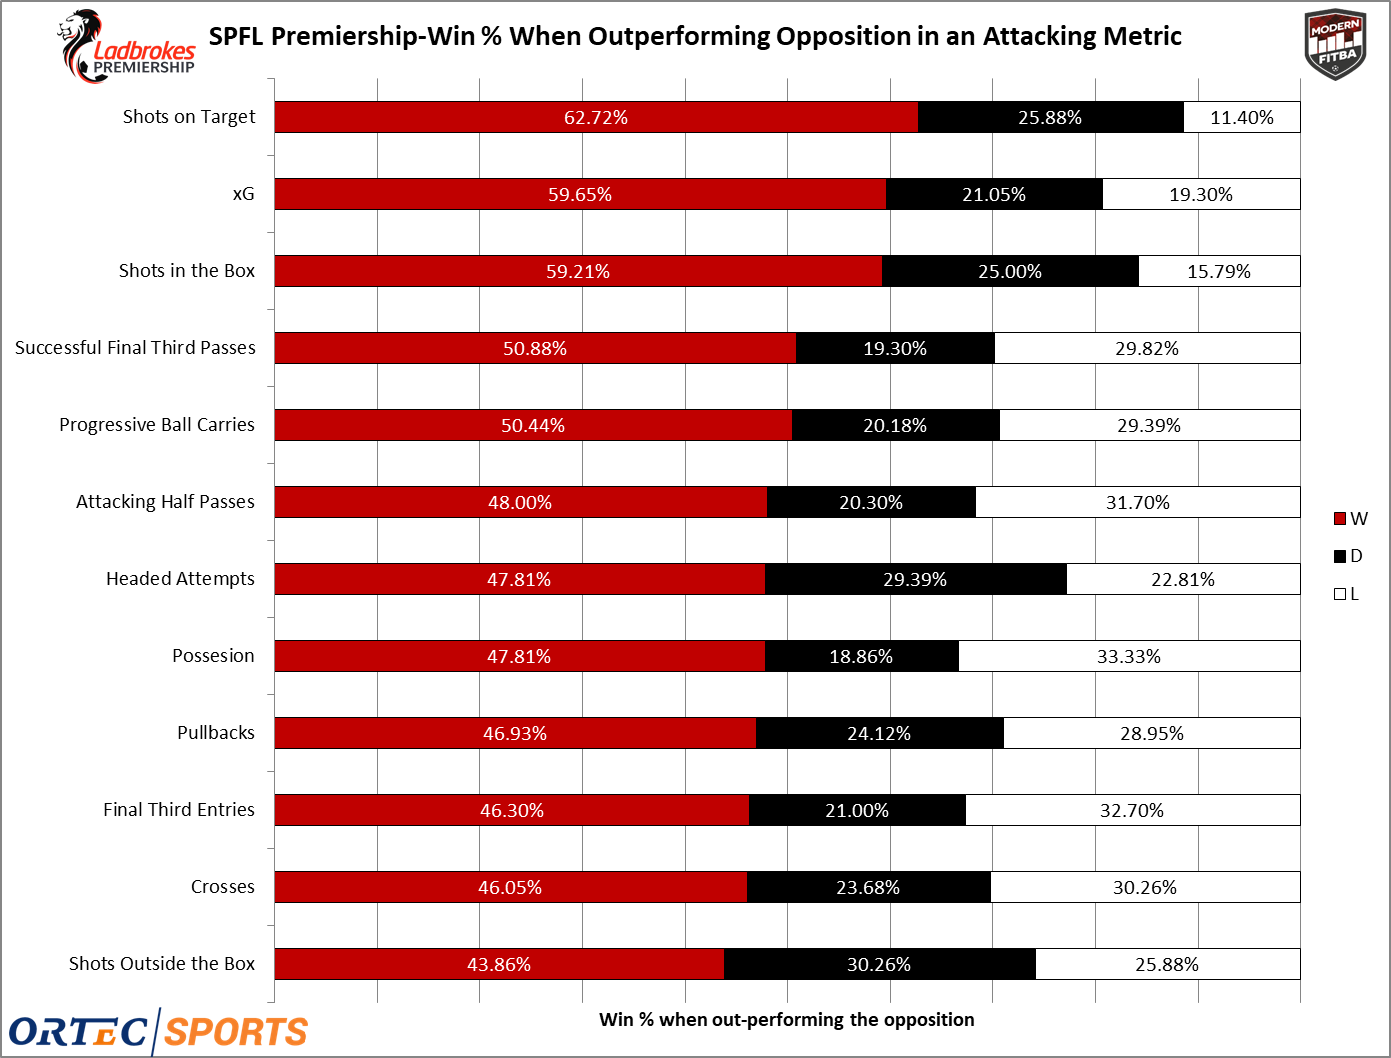 Win Percentage when a team out performed the opposition in various metrics for the SPFL Premiership 2018-19.